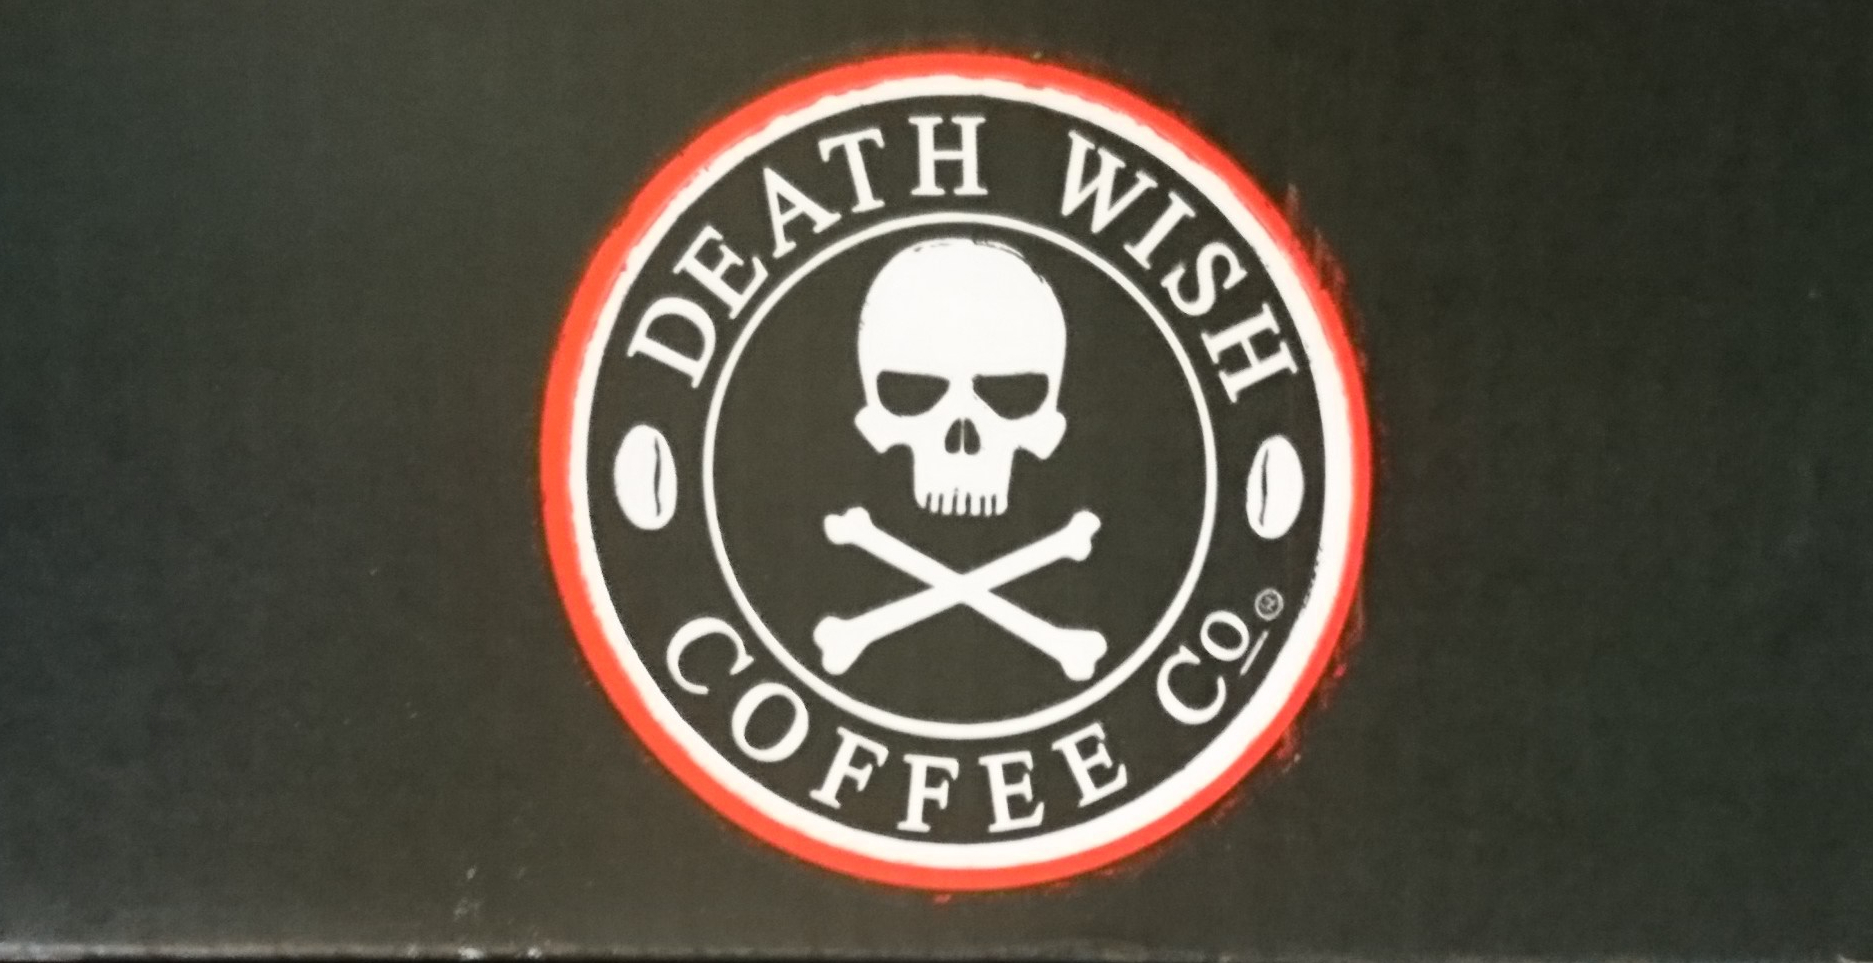 death wish coffee co logo with skull